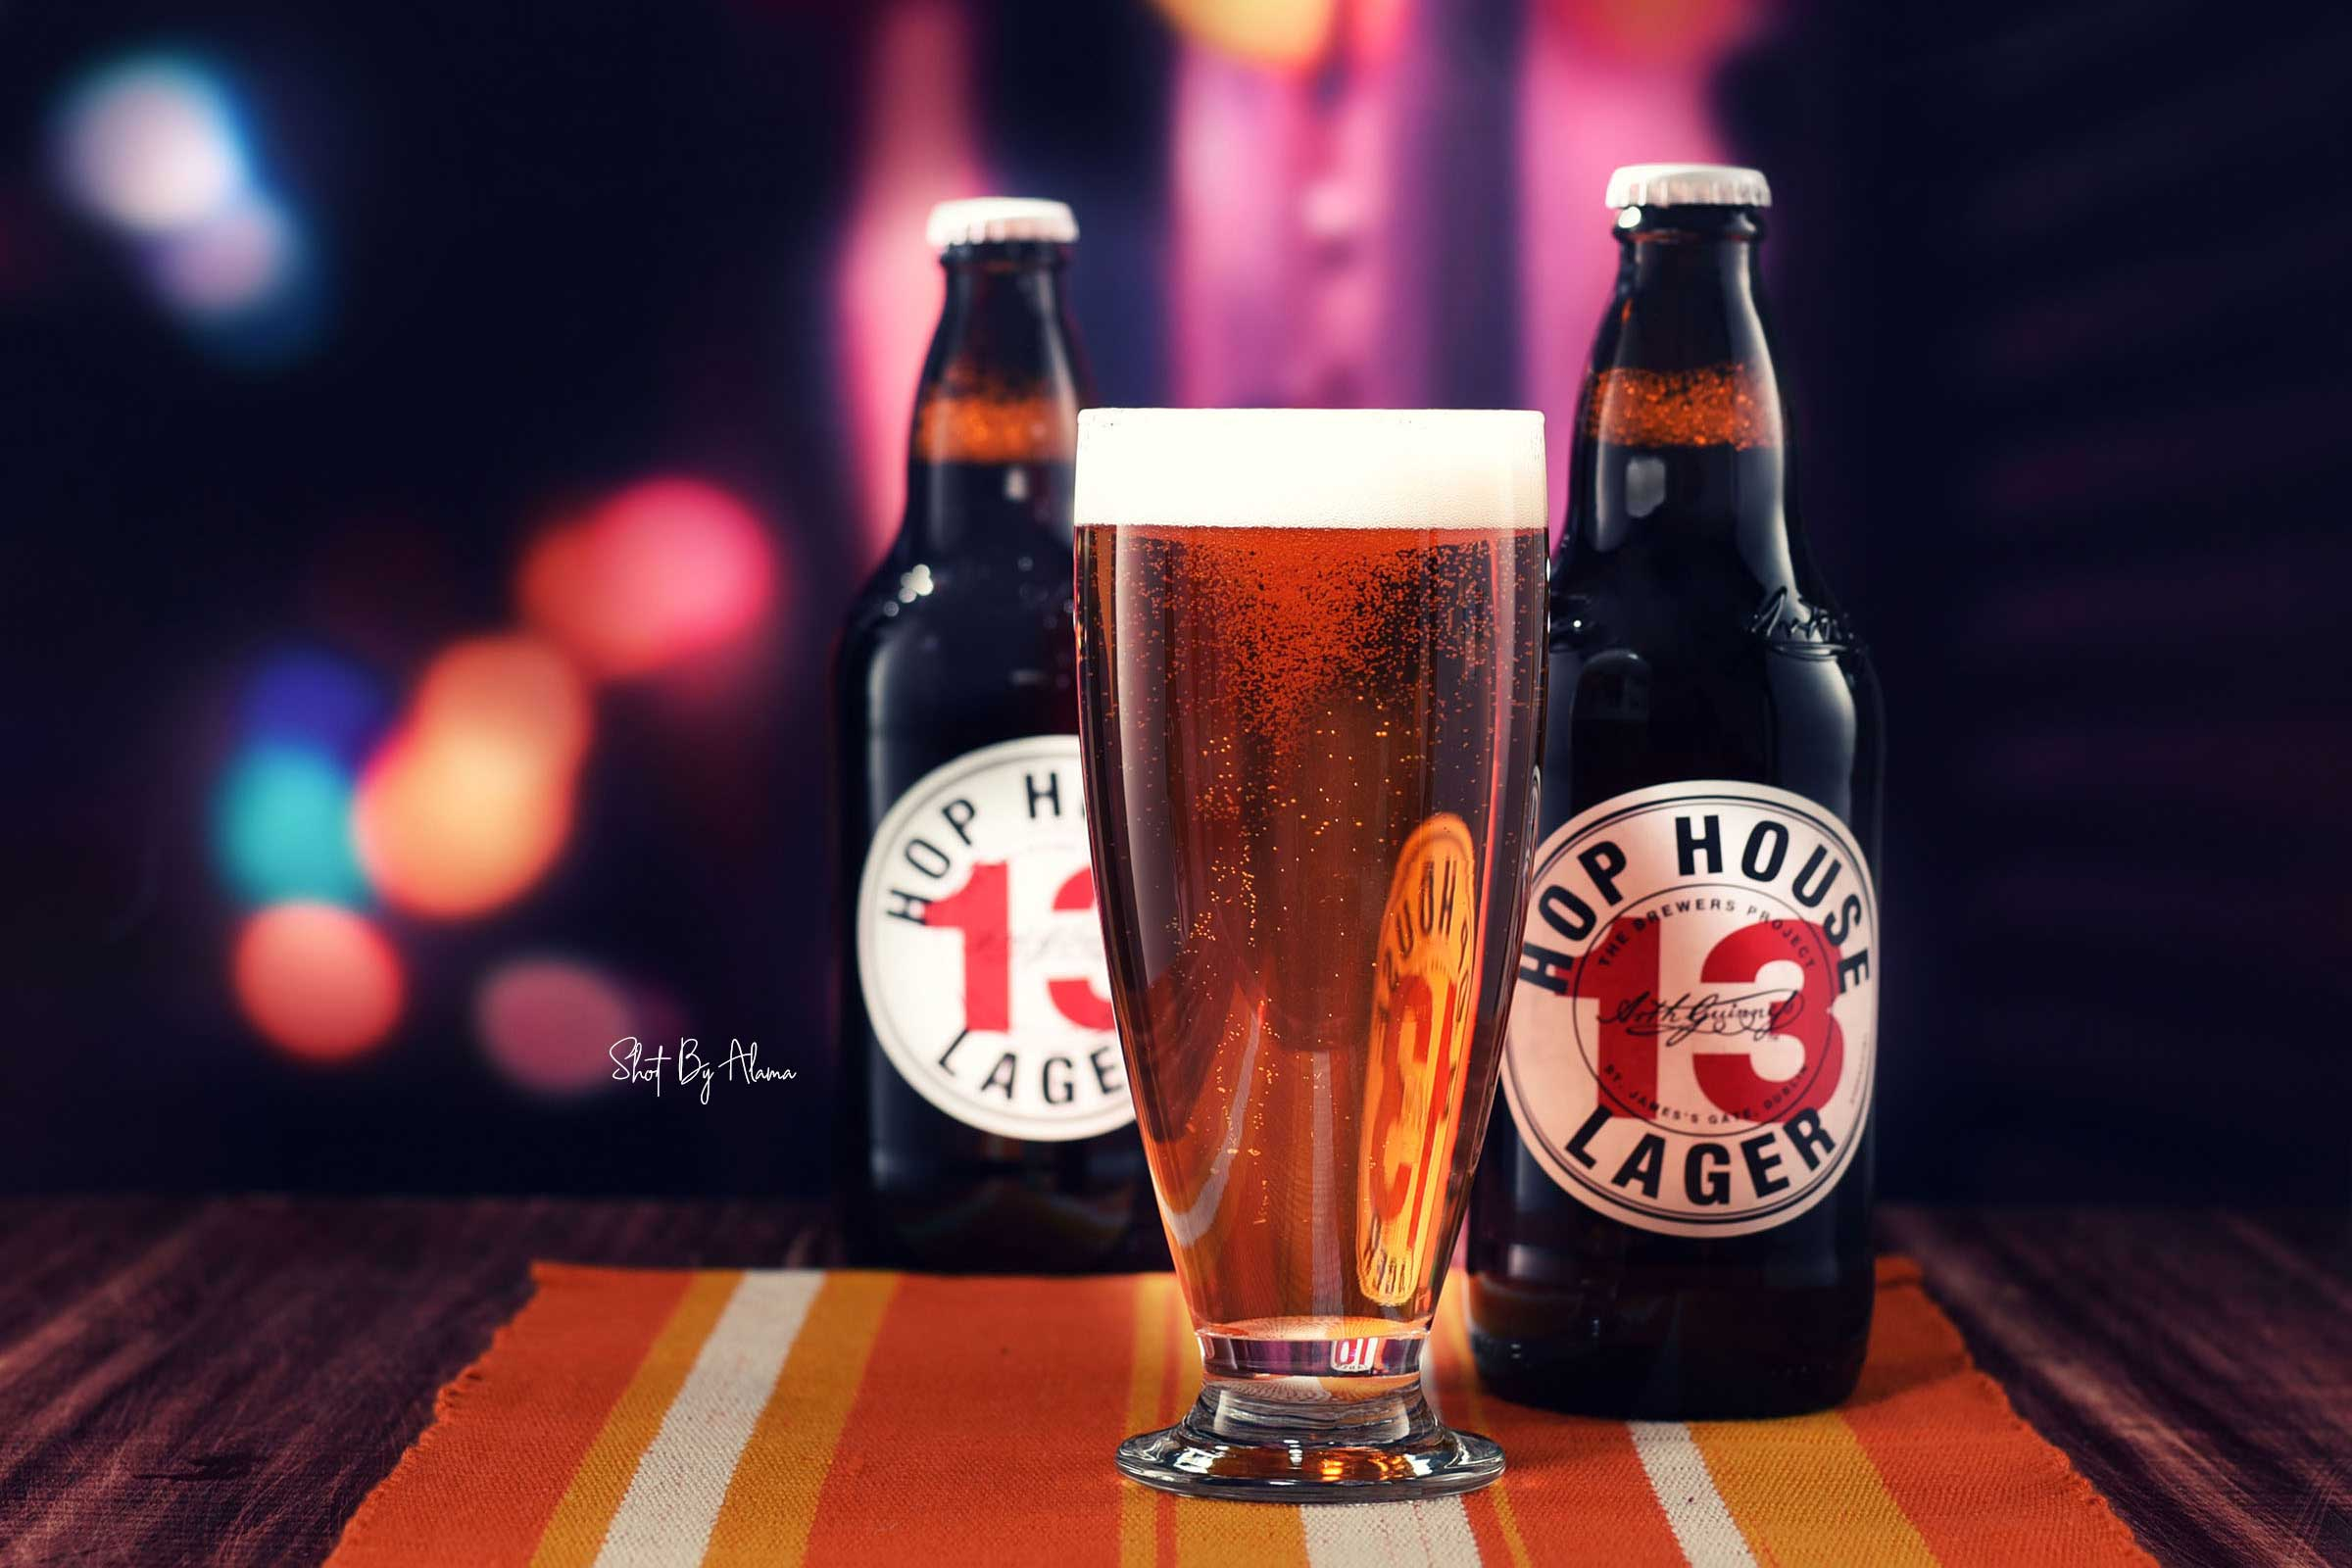 Hop House 13- Kenyan Product and Food Photographers Kenyan Commercial Photography